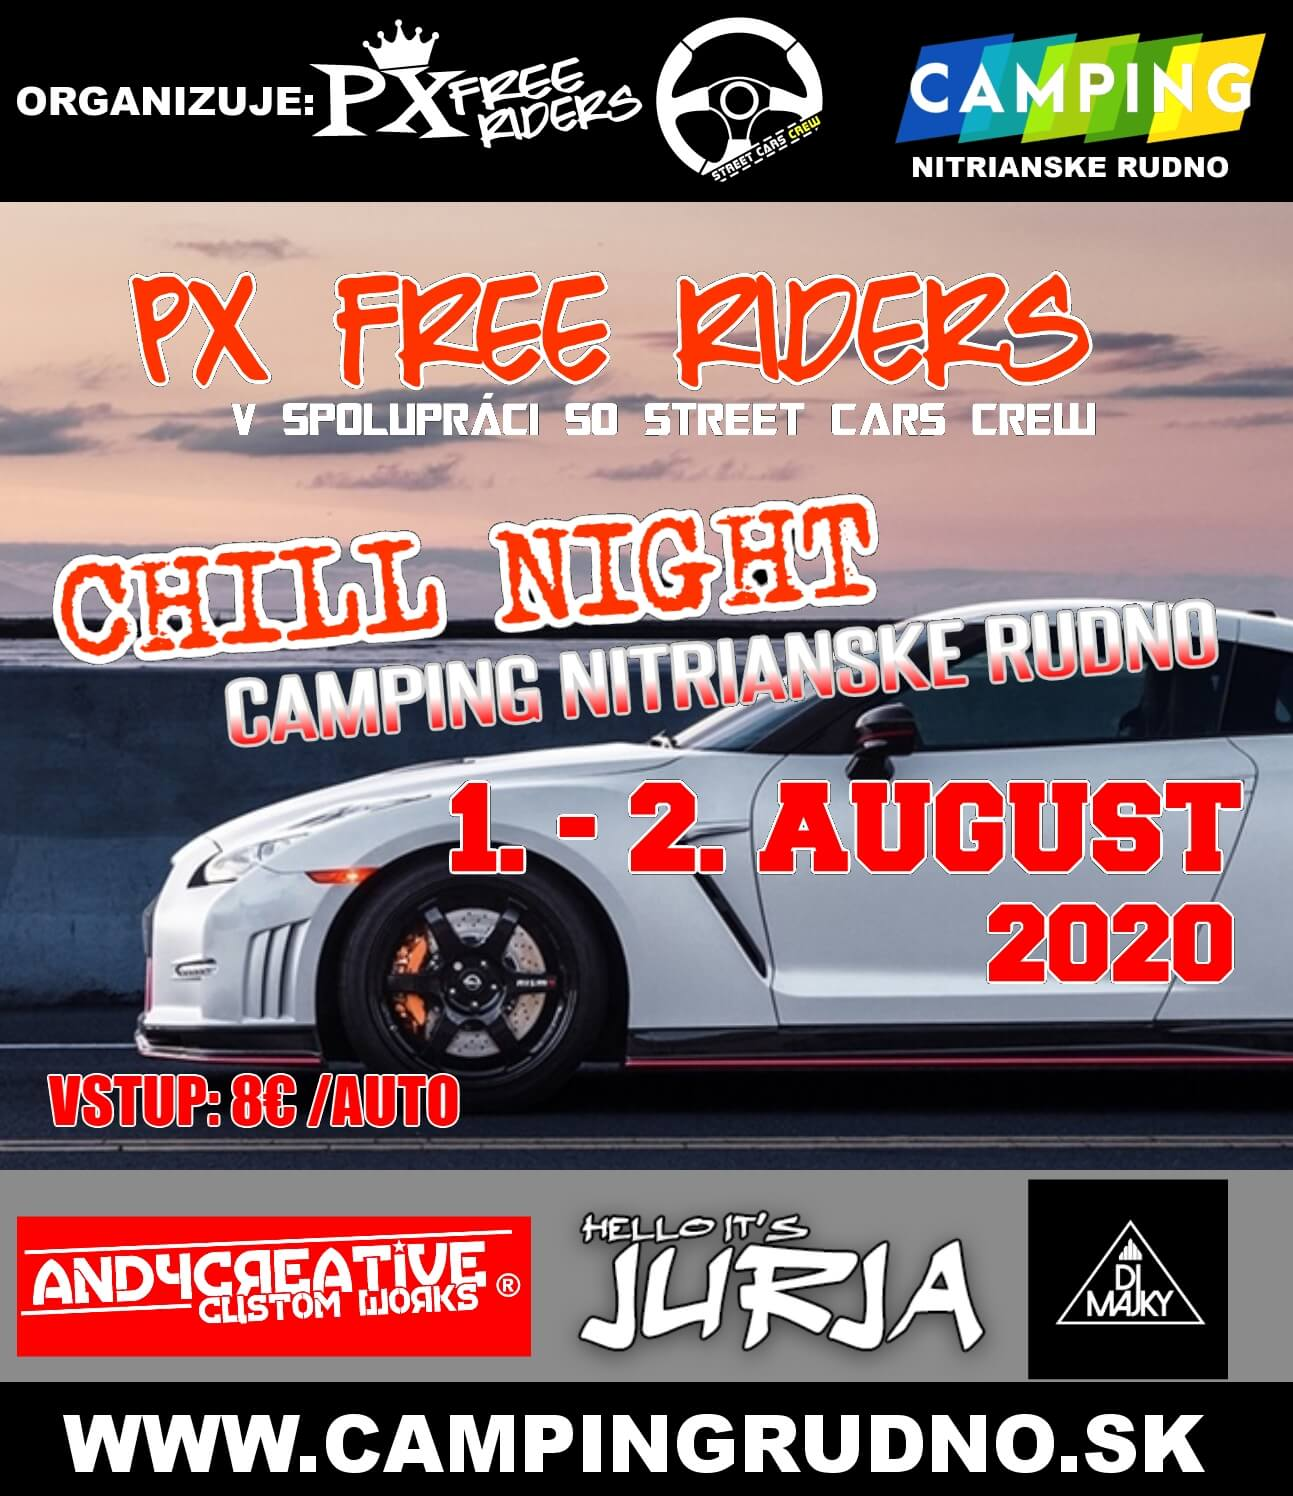 PX free riders | chill night